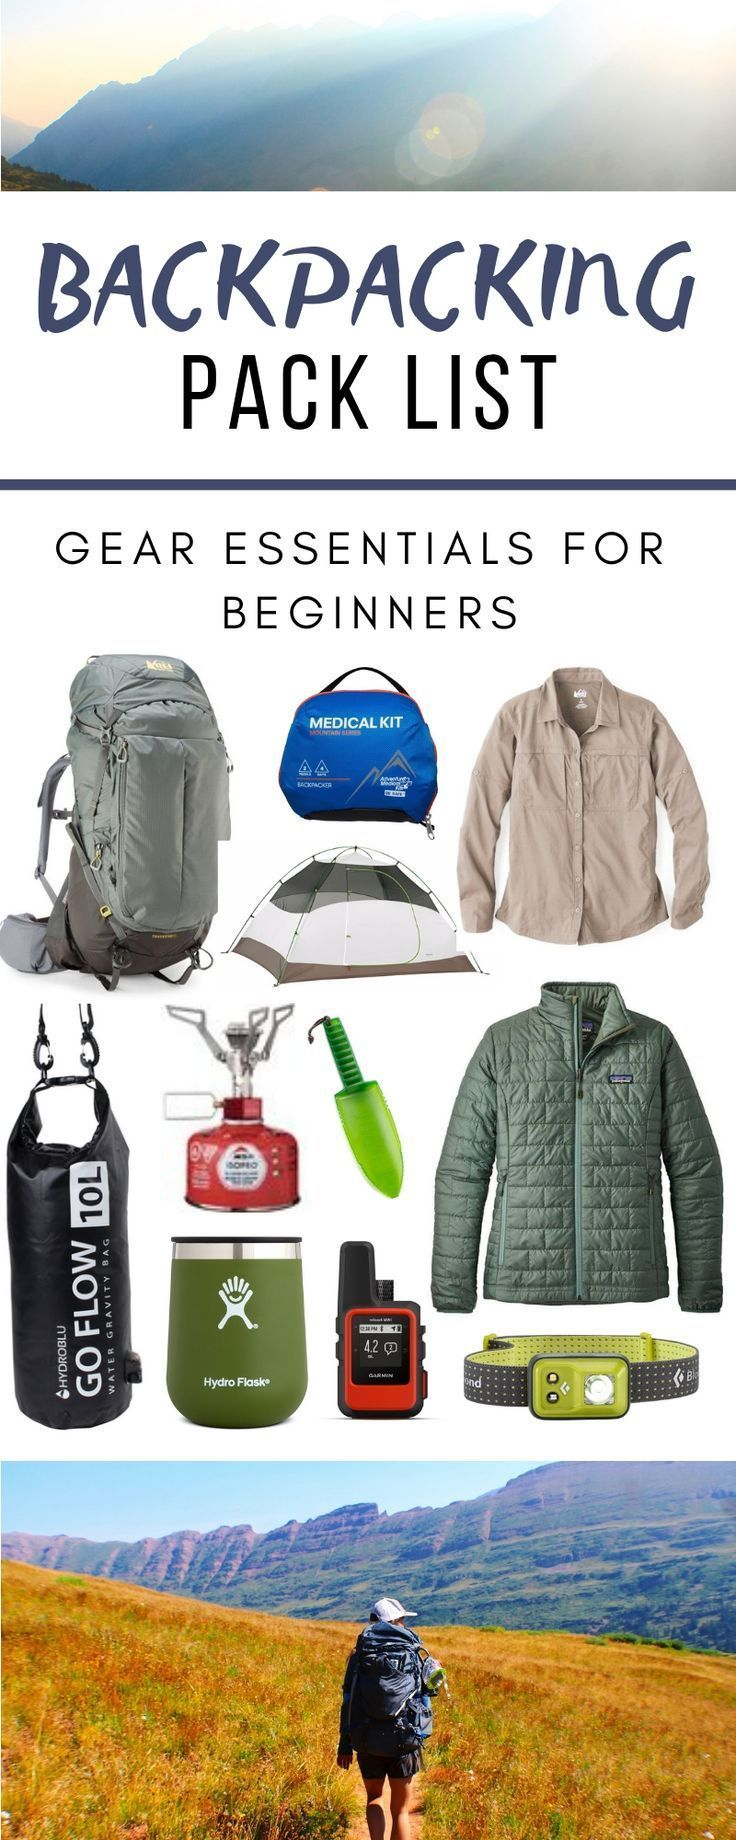 Backpacking Pack List: Gear Essentials For Beginners • Nomads With A Purpose